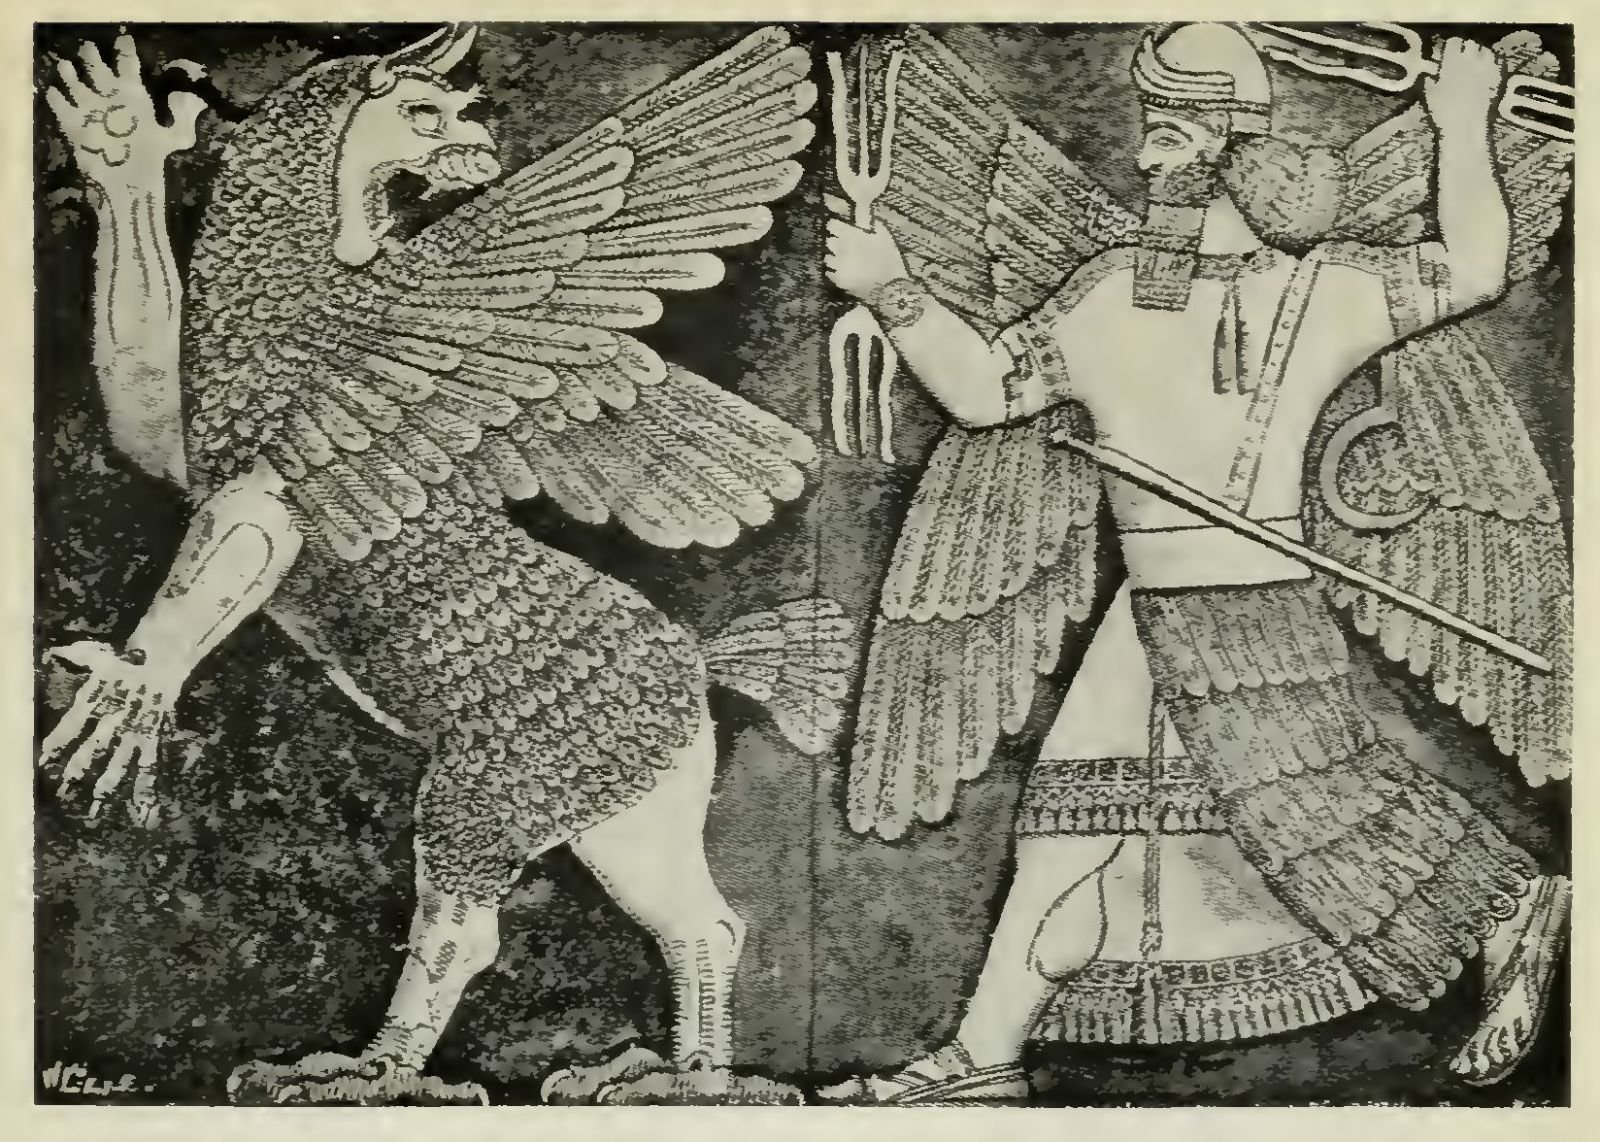 Fig. 1. Conflict of Marduk with the Monster Tiamat